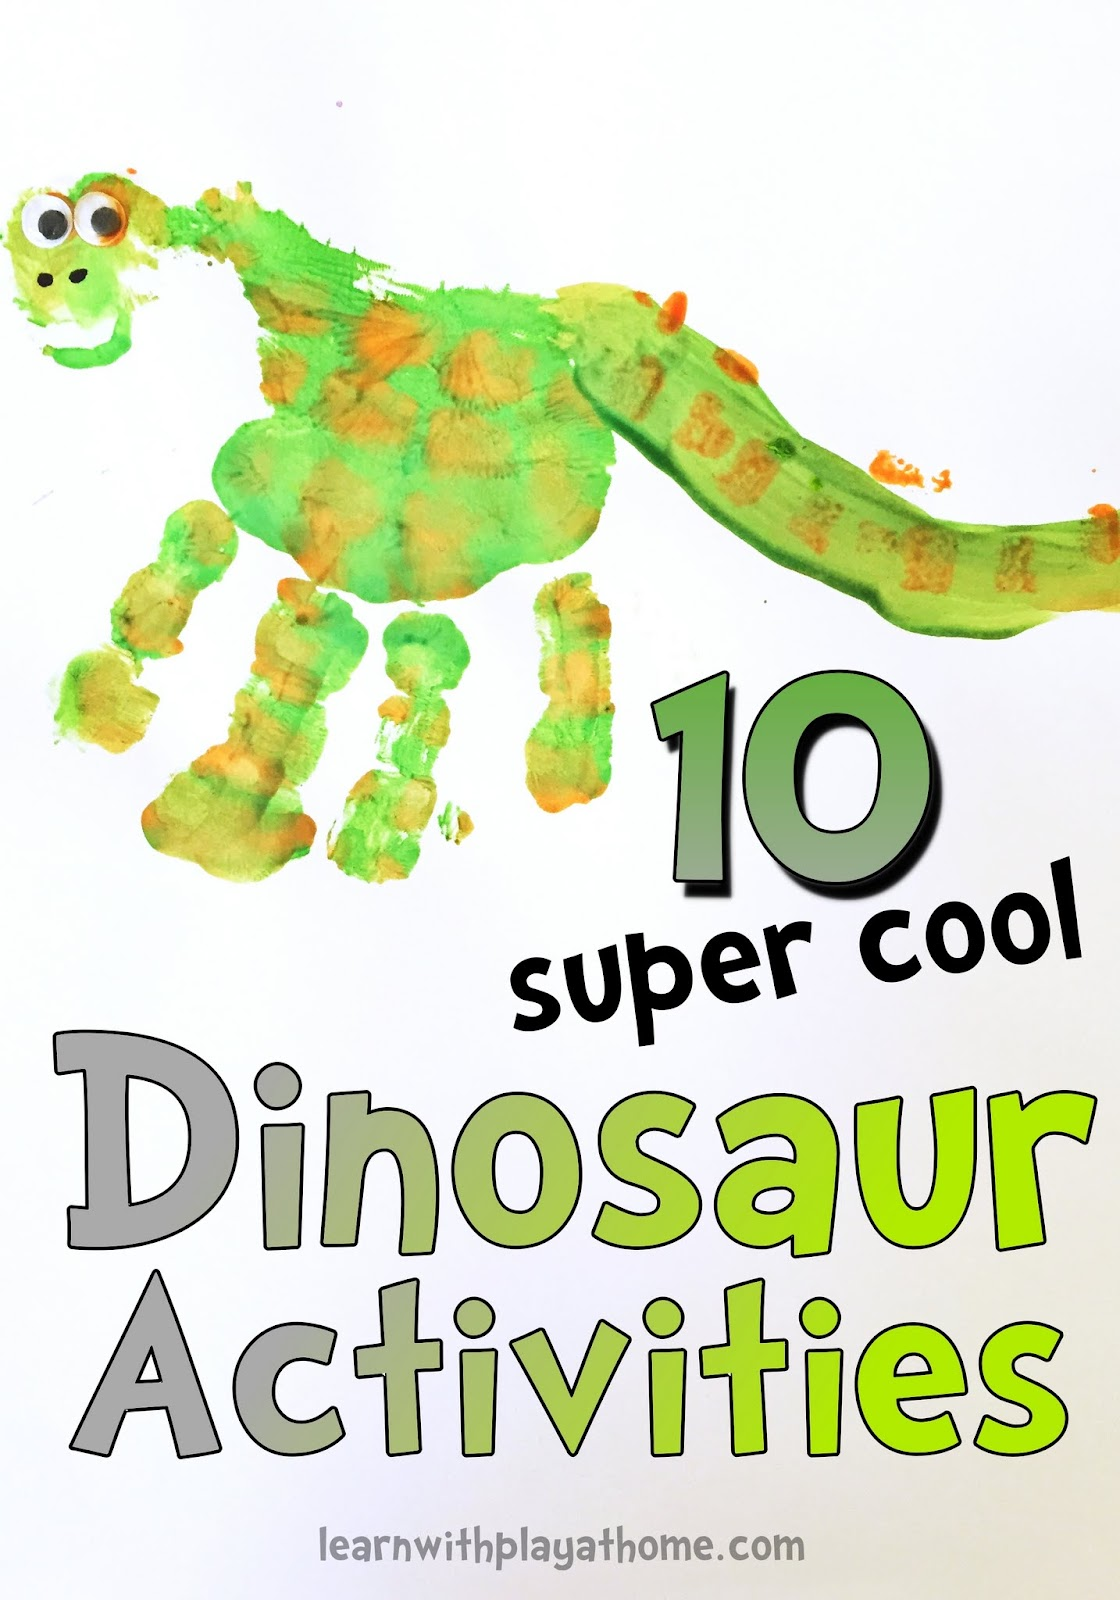 Learn with Play at Home: 10 Super Cool Dinosaur Activities